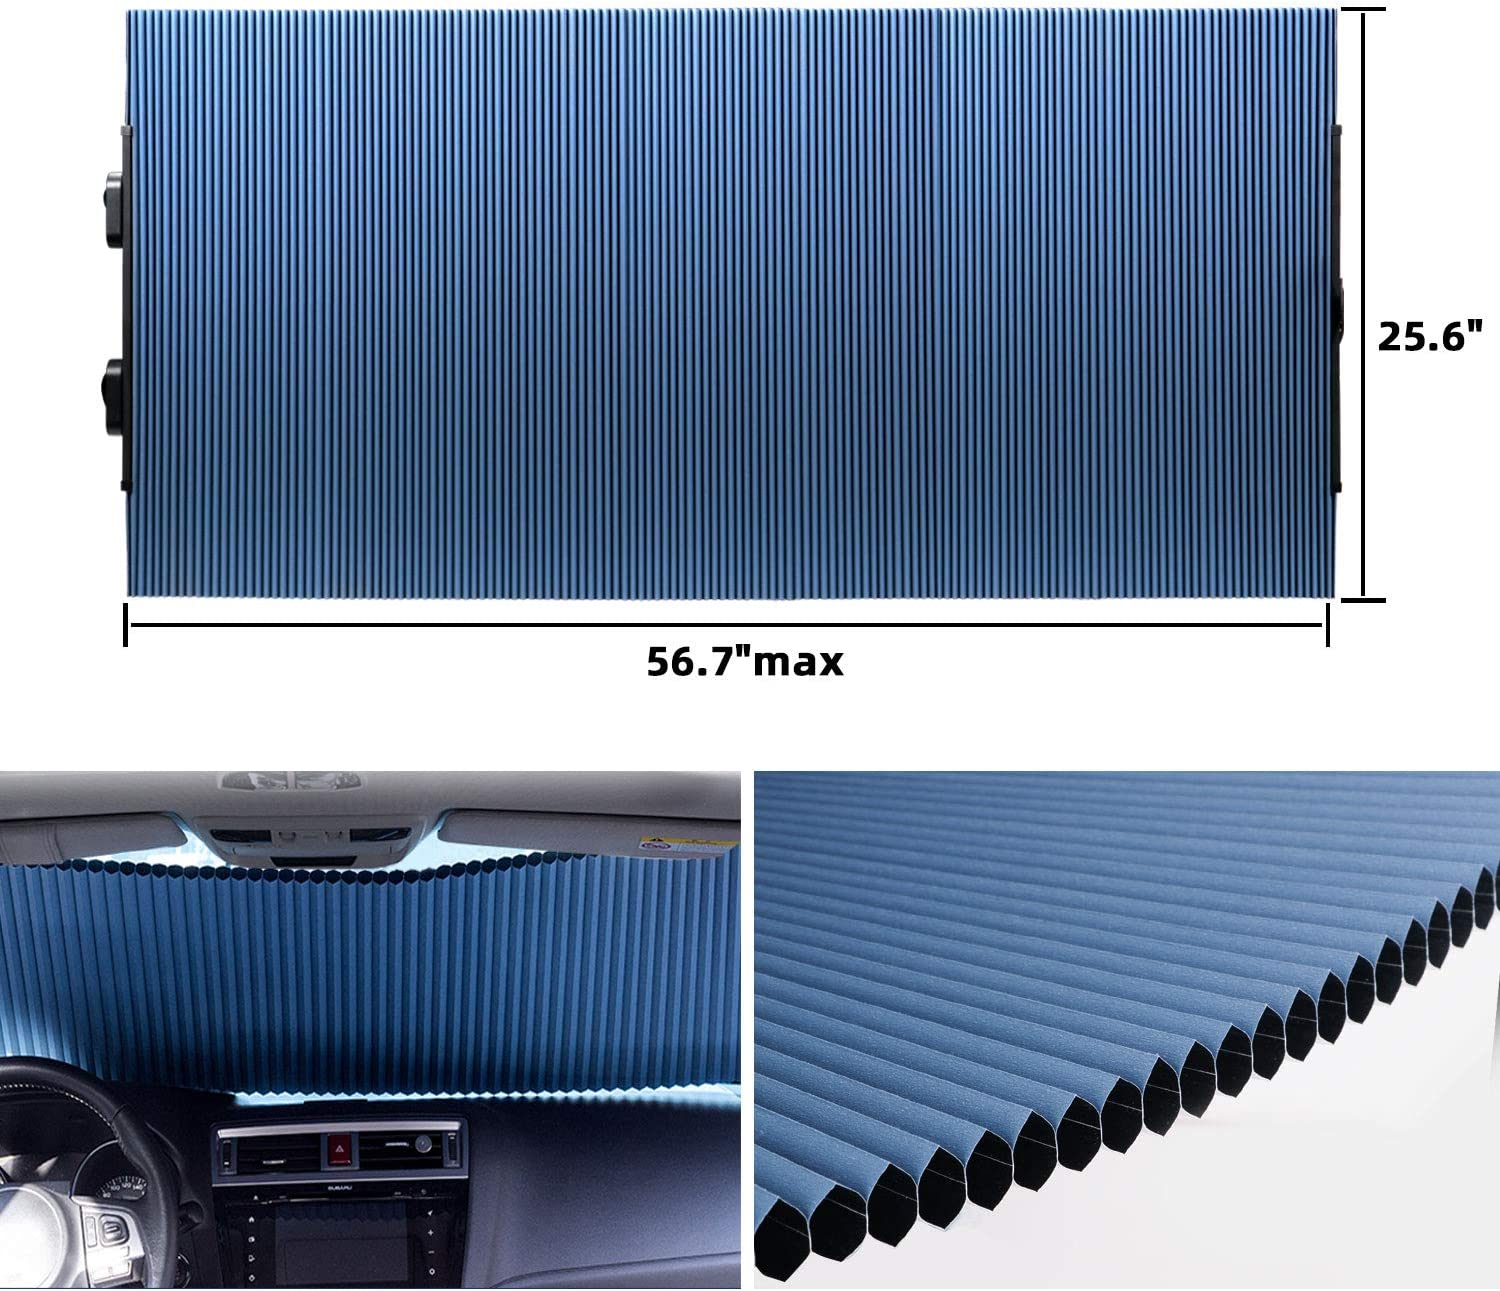 Retractable Windshield Sun Shade for Car, Cordless Cellular Sun Visor Protector Blocks 99% UV Rays to Keep The Vehicle Cool, Honeycomb Sunshade Fits Various Models with 3 Suction Cups 25.6